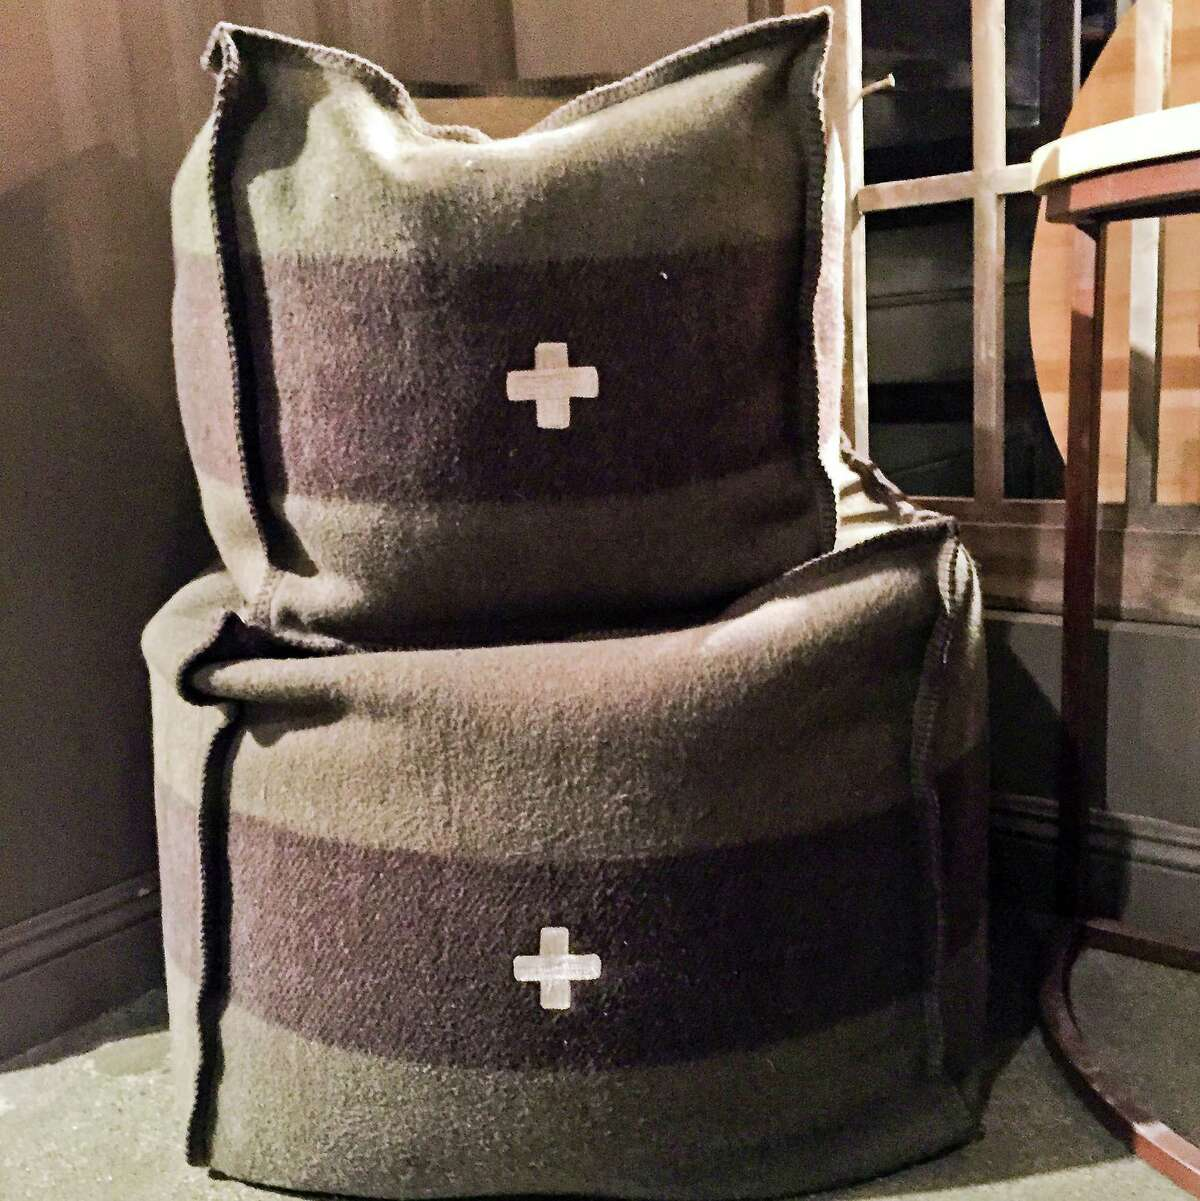 Swiss Army green and brown poufs by BoBo Intriguing Objects. They also come in black and cream, brown and red and gray and black. (Patricia Sheridan/Pittsburgh Post-Gazette/TNS)